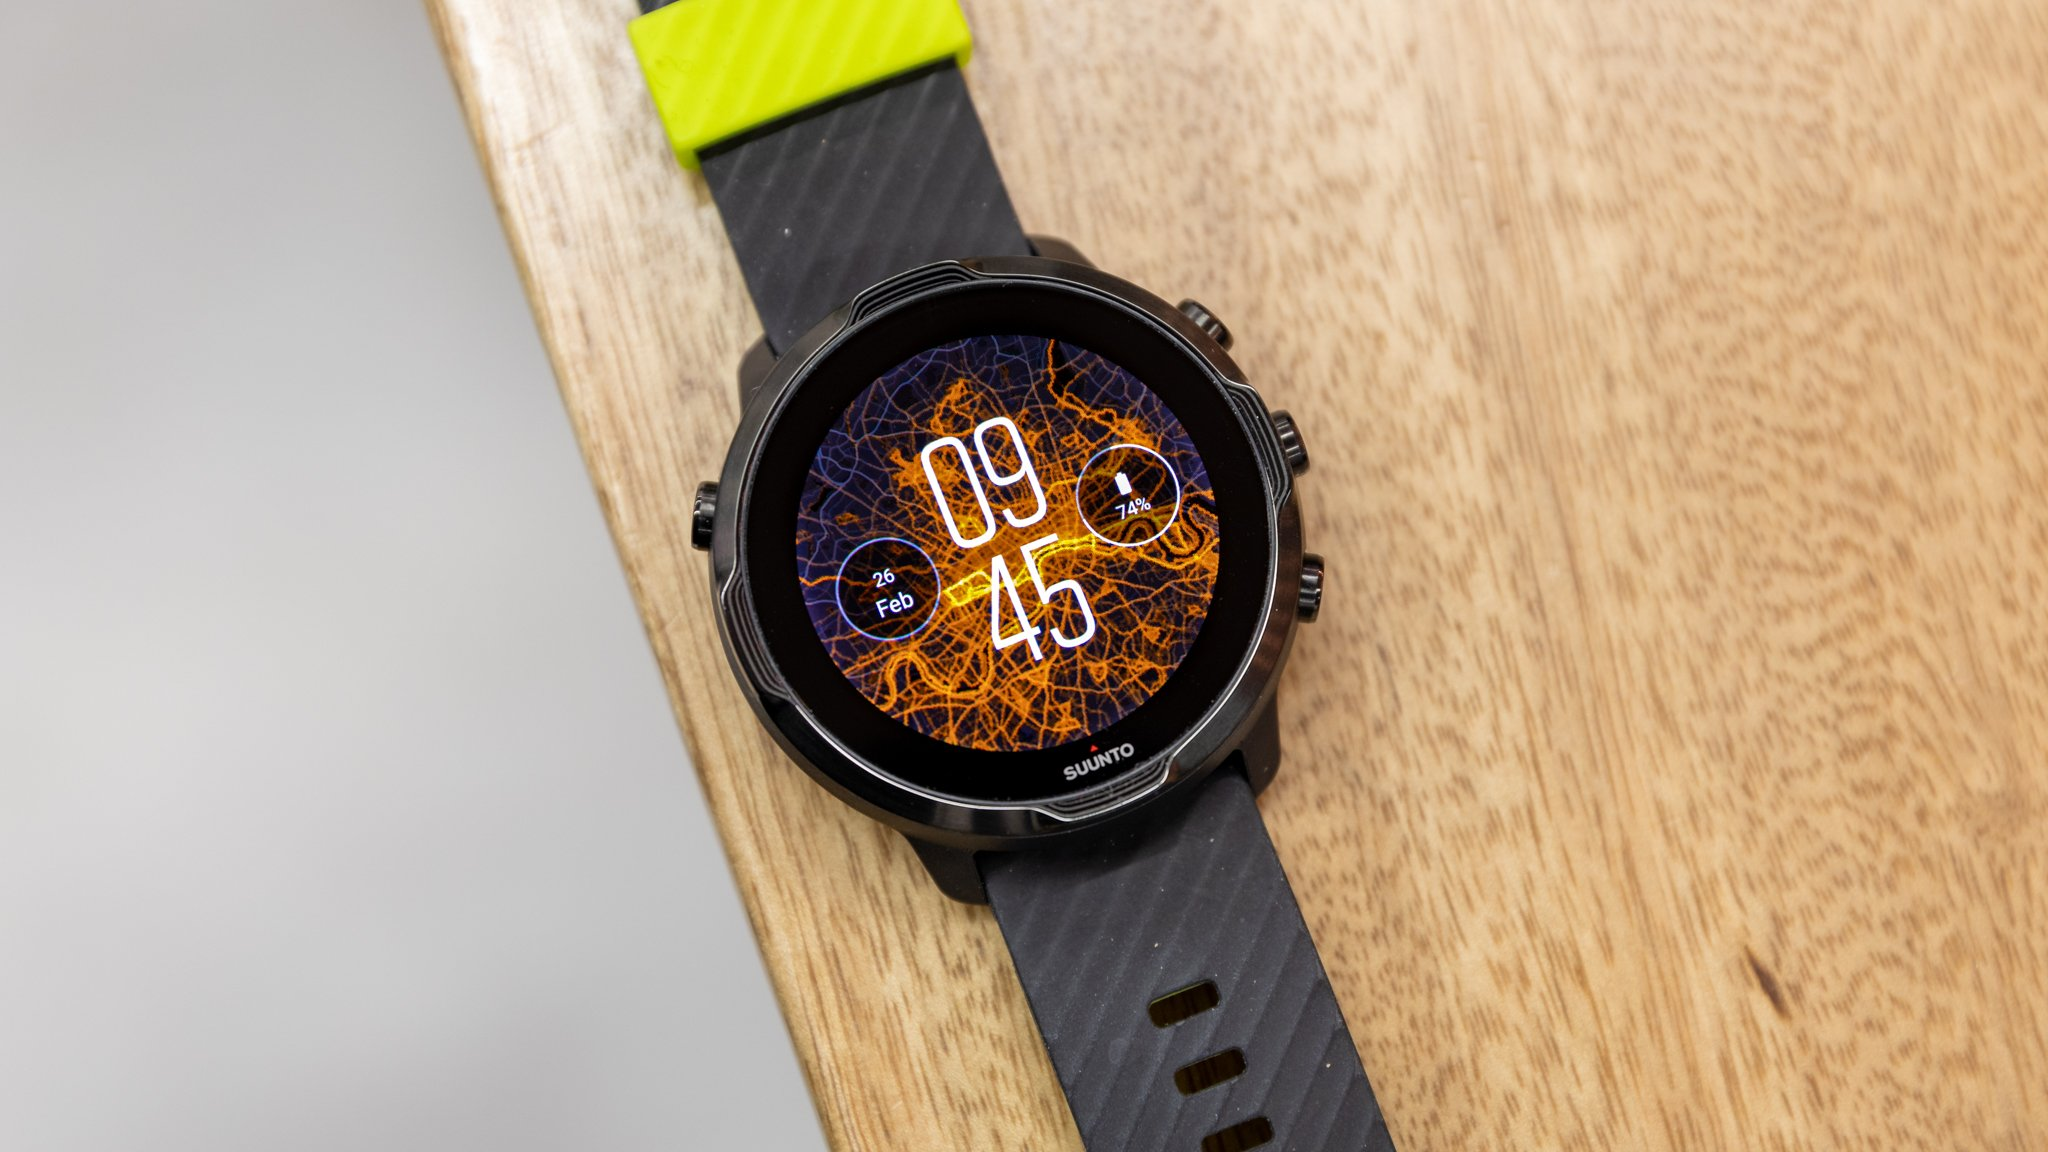 Suunto 7 review: The best Wear OS watch for fitness enthusiasts